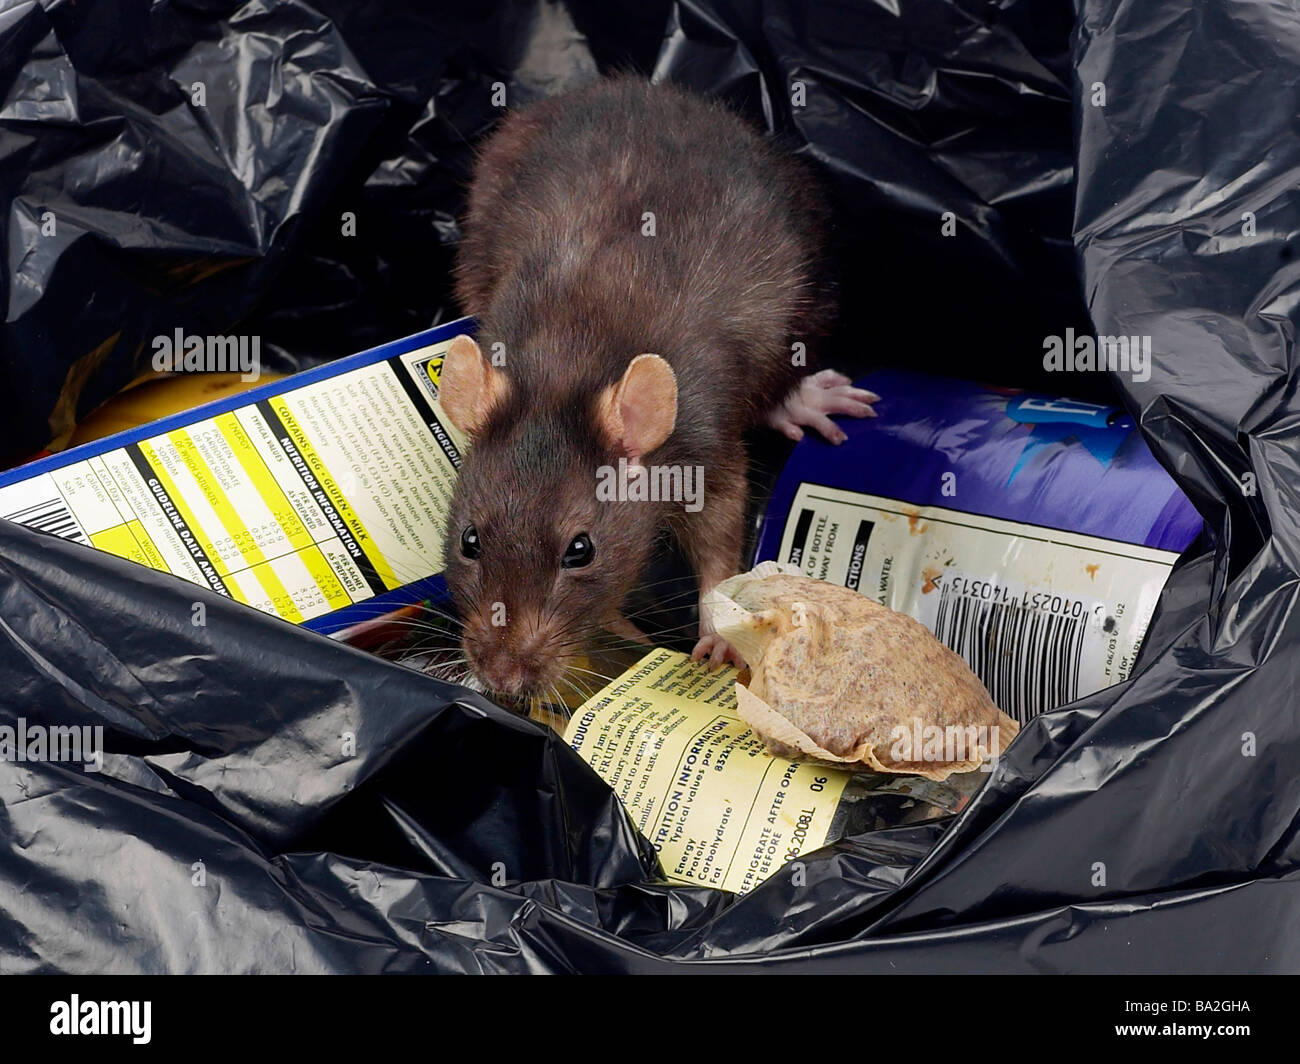 A brown rat around rubbish in a bin bag. - Stock Image